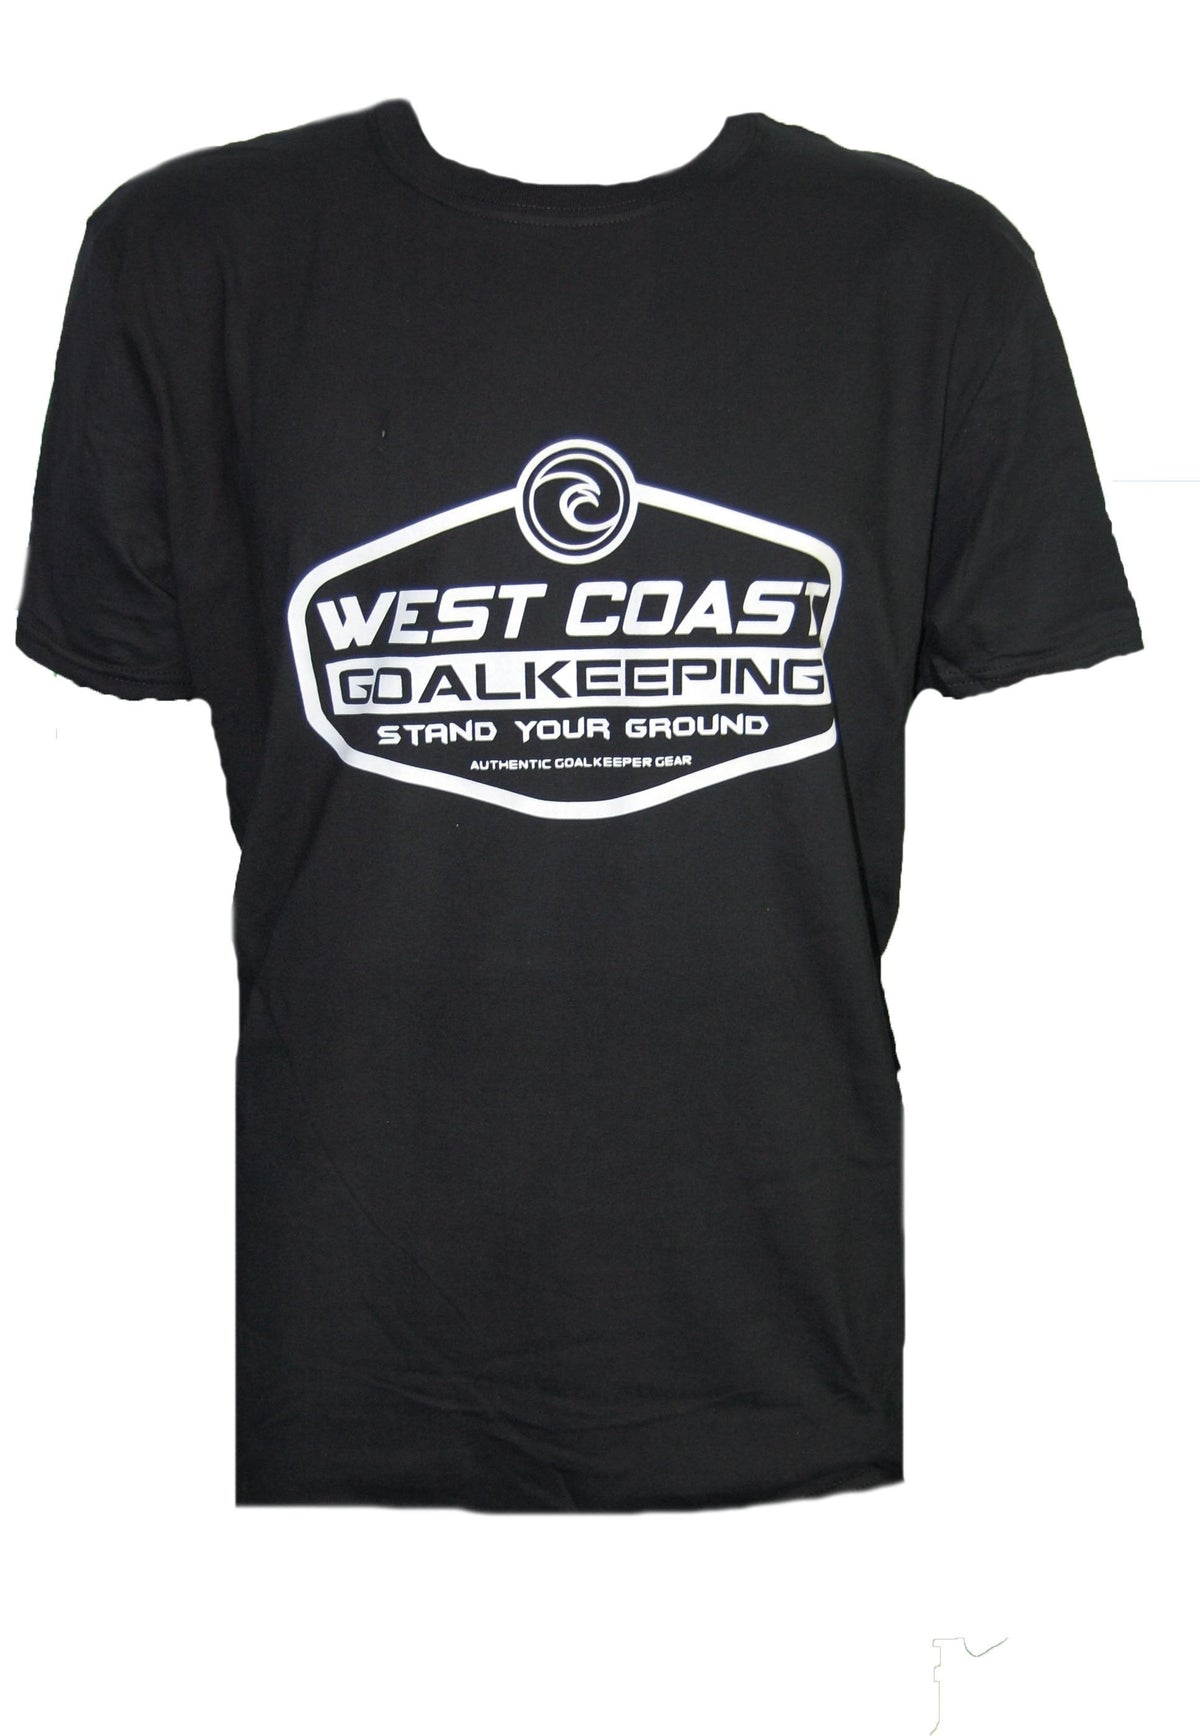 West Coast Club T-Shirt - Fingersave Goalkeeper Gloves West Coast Goalkeeping